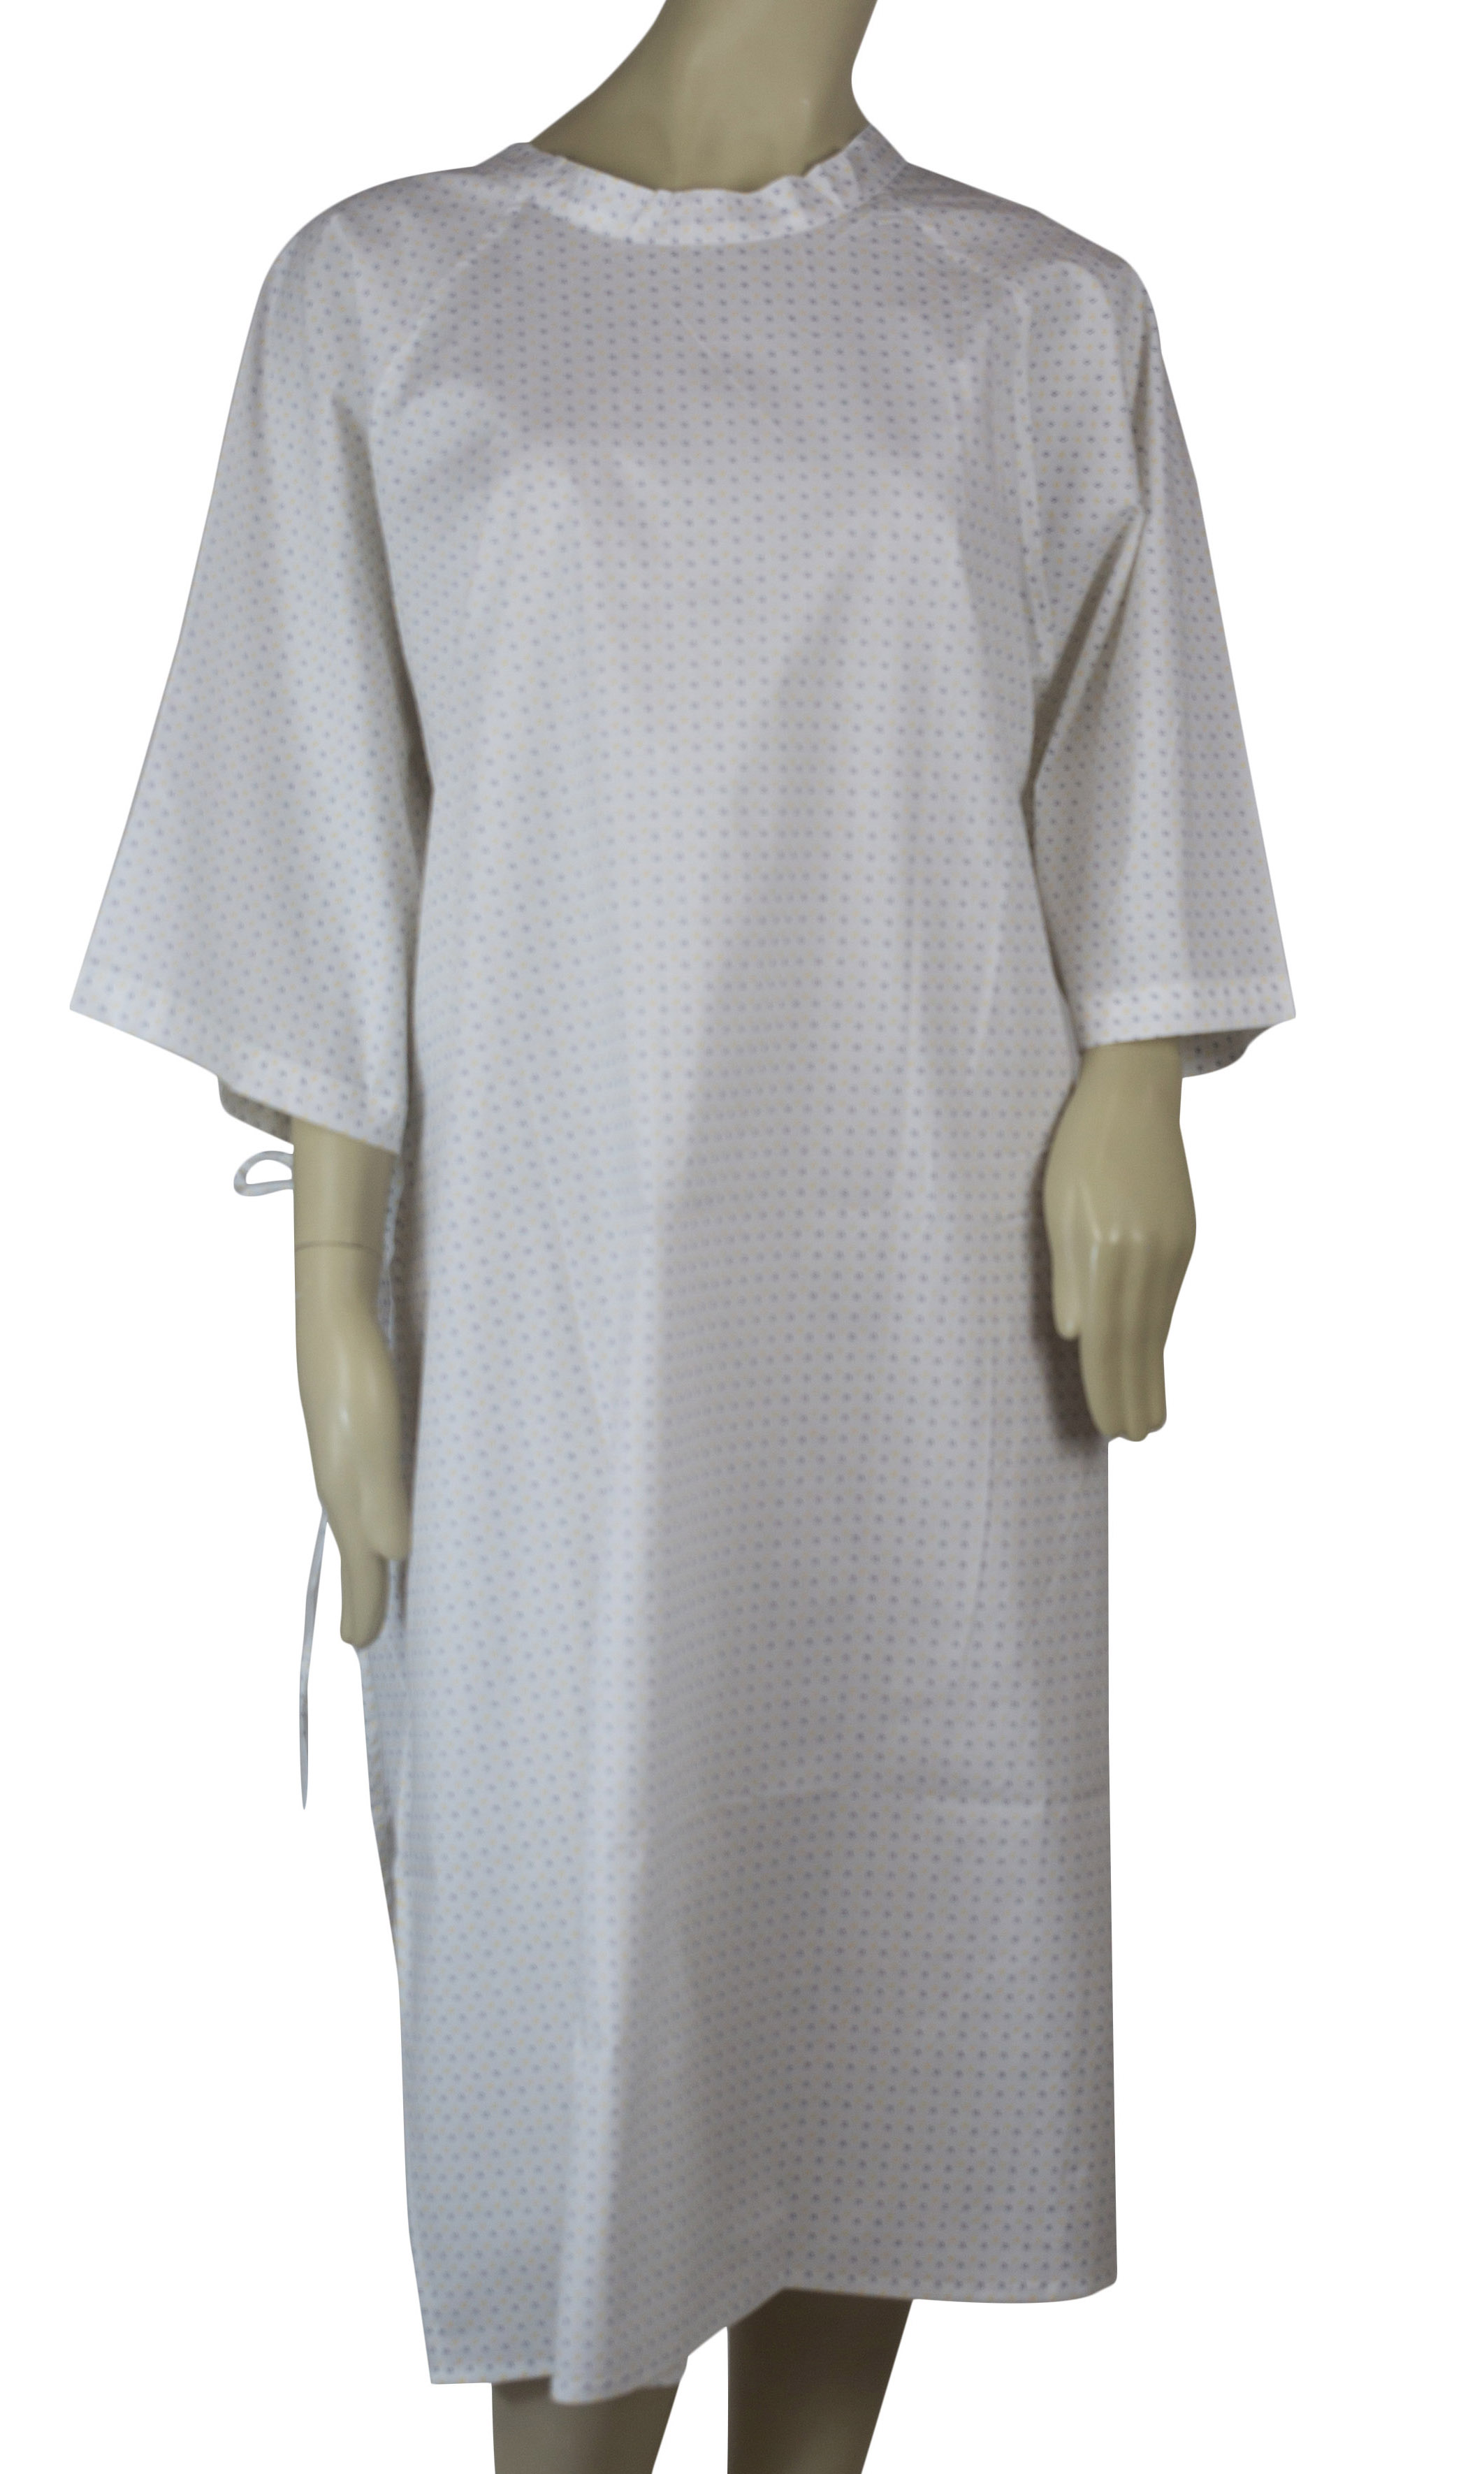 PatientGown-SP09